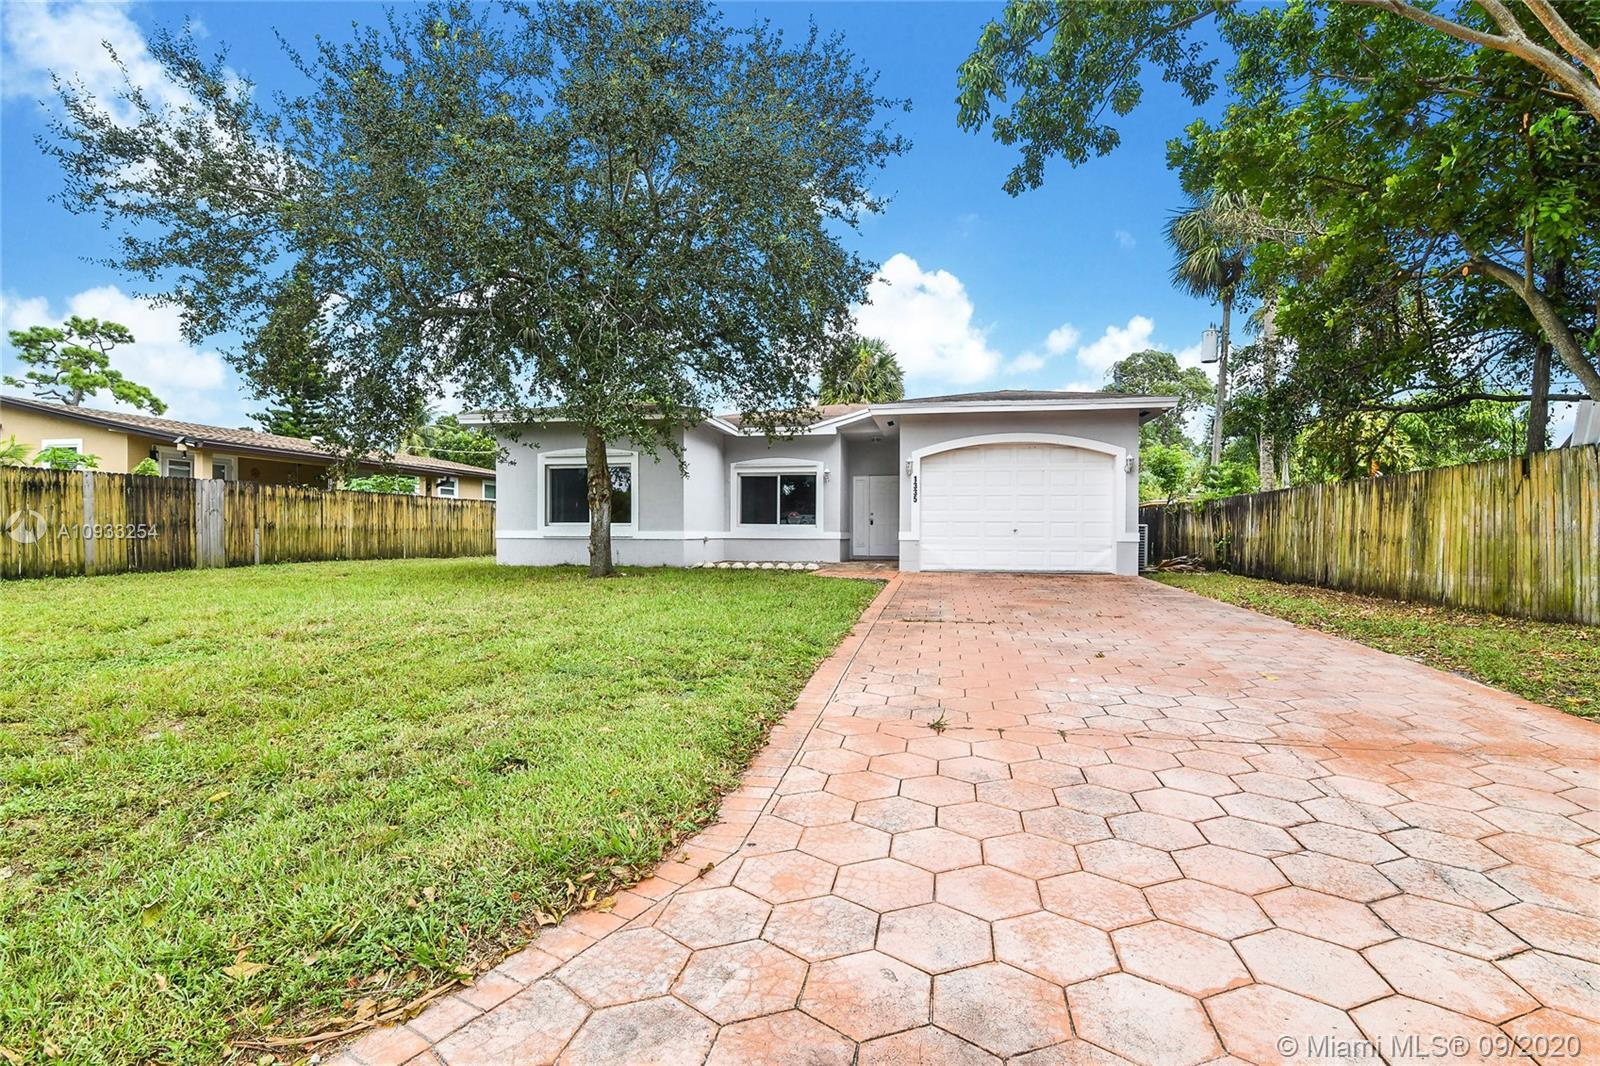 2008 4 bedroom and 2.5 bathroom Single Family Home.  Home sits on a large lot space with great layou